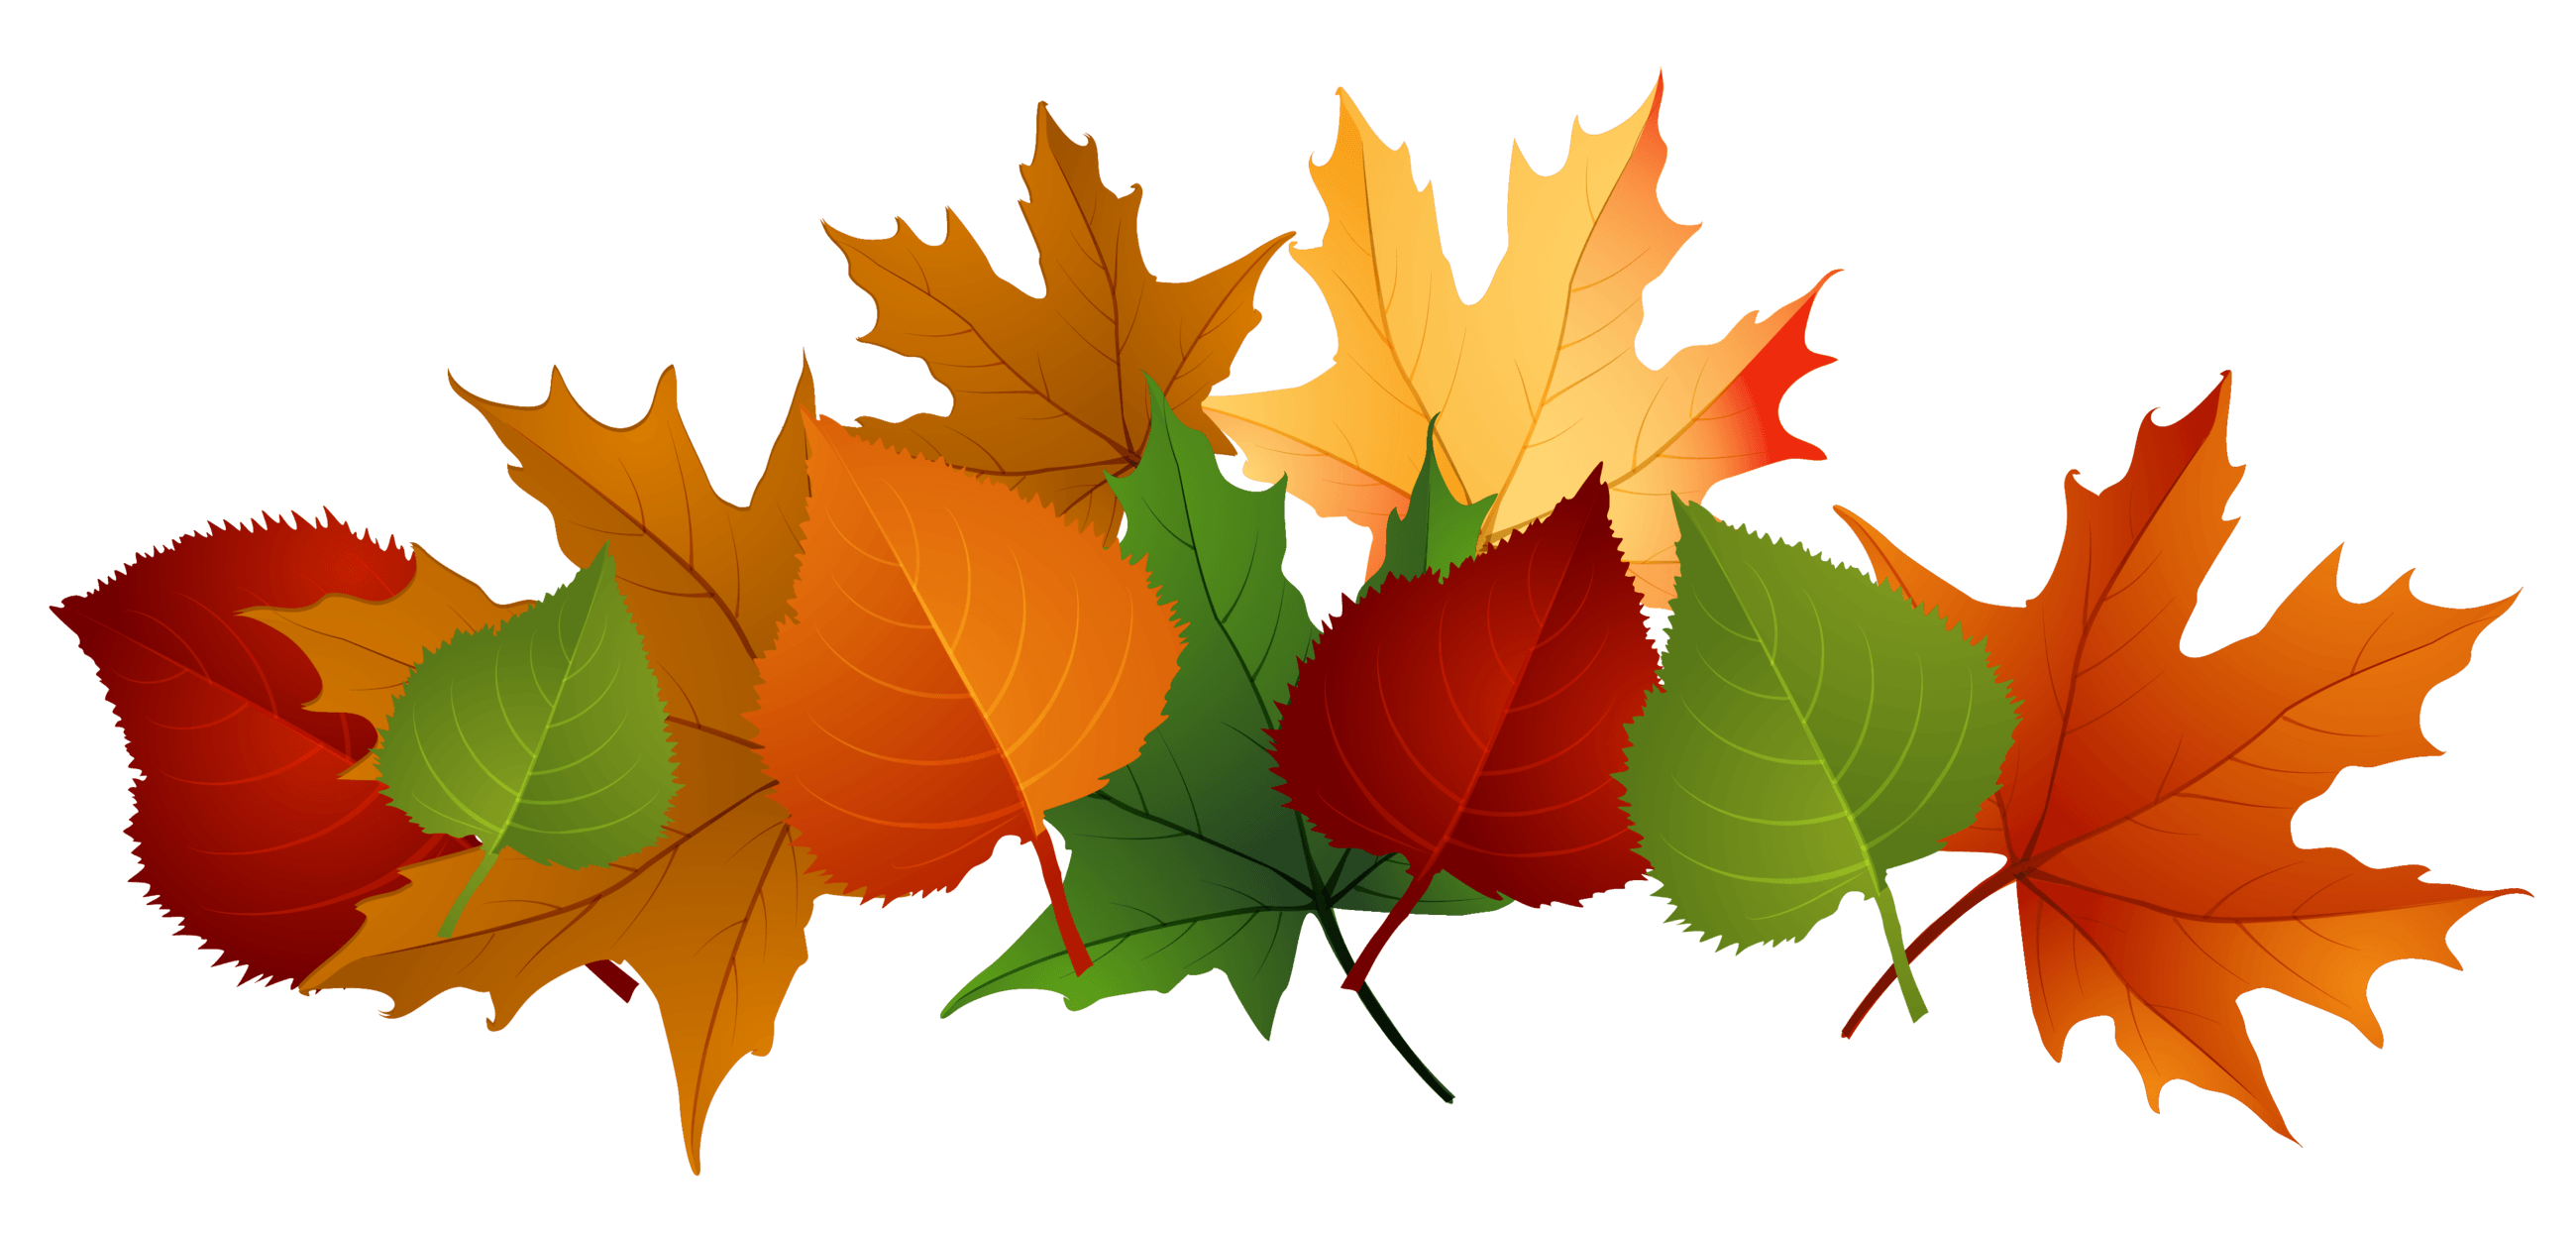 pile of leaves drawing at getdrawings com free for personal use rh getdrawings com fall leaves clip art free fall leaves clip art images